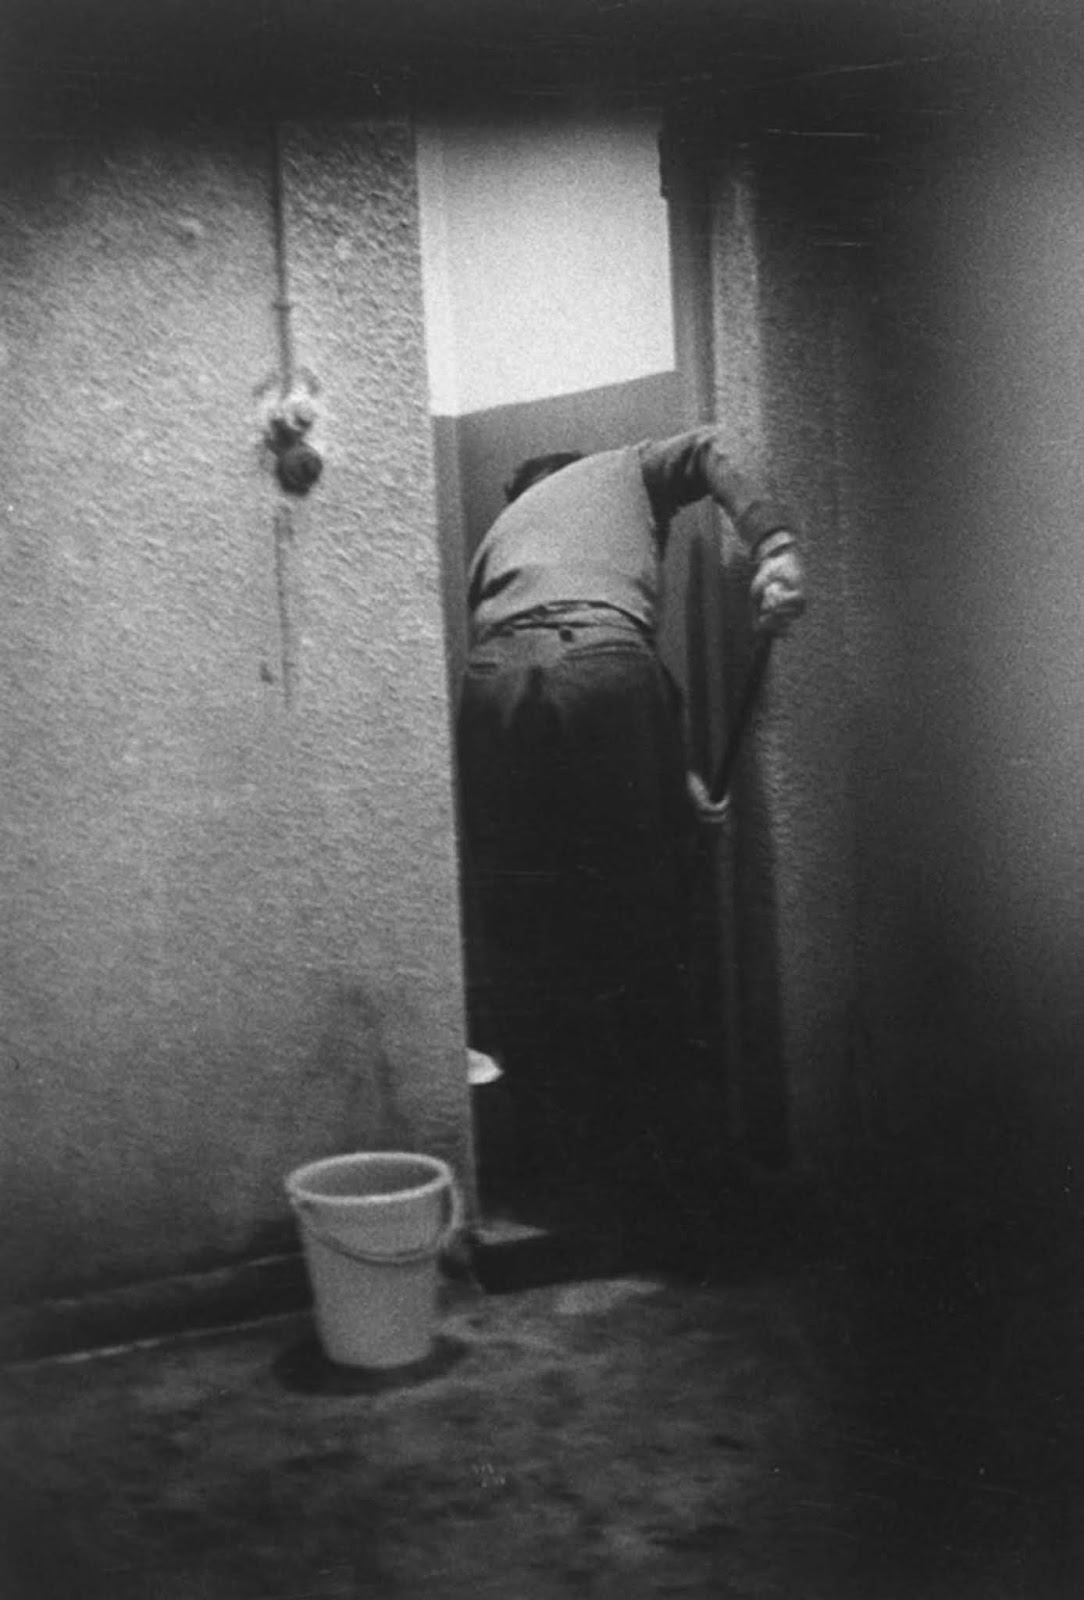 Doing chores, Eichmann mopped the bathroom floor in his jail near Haifa.